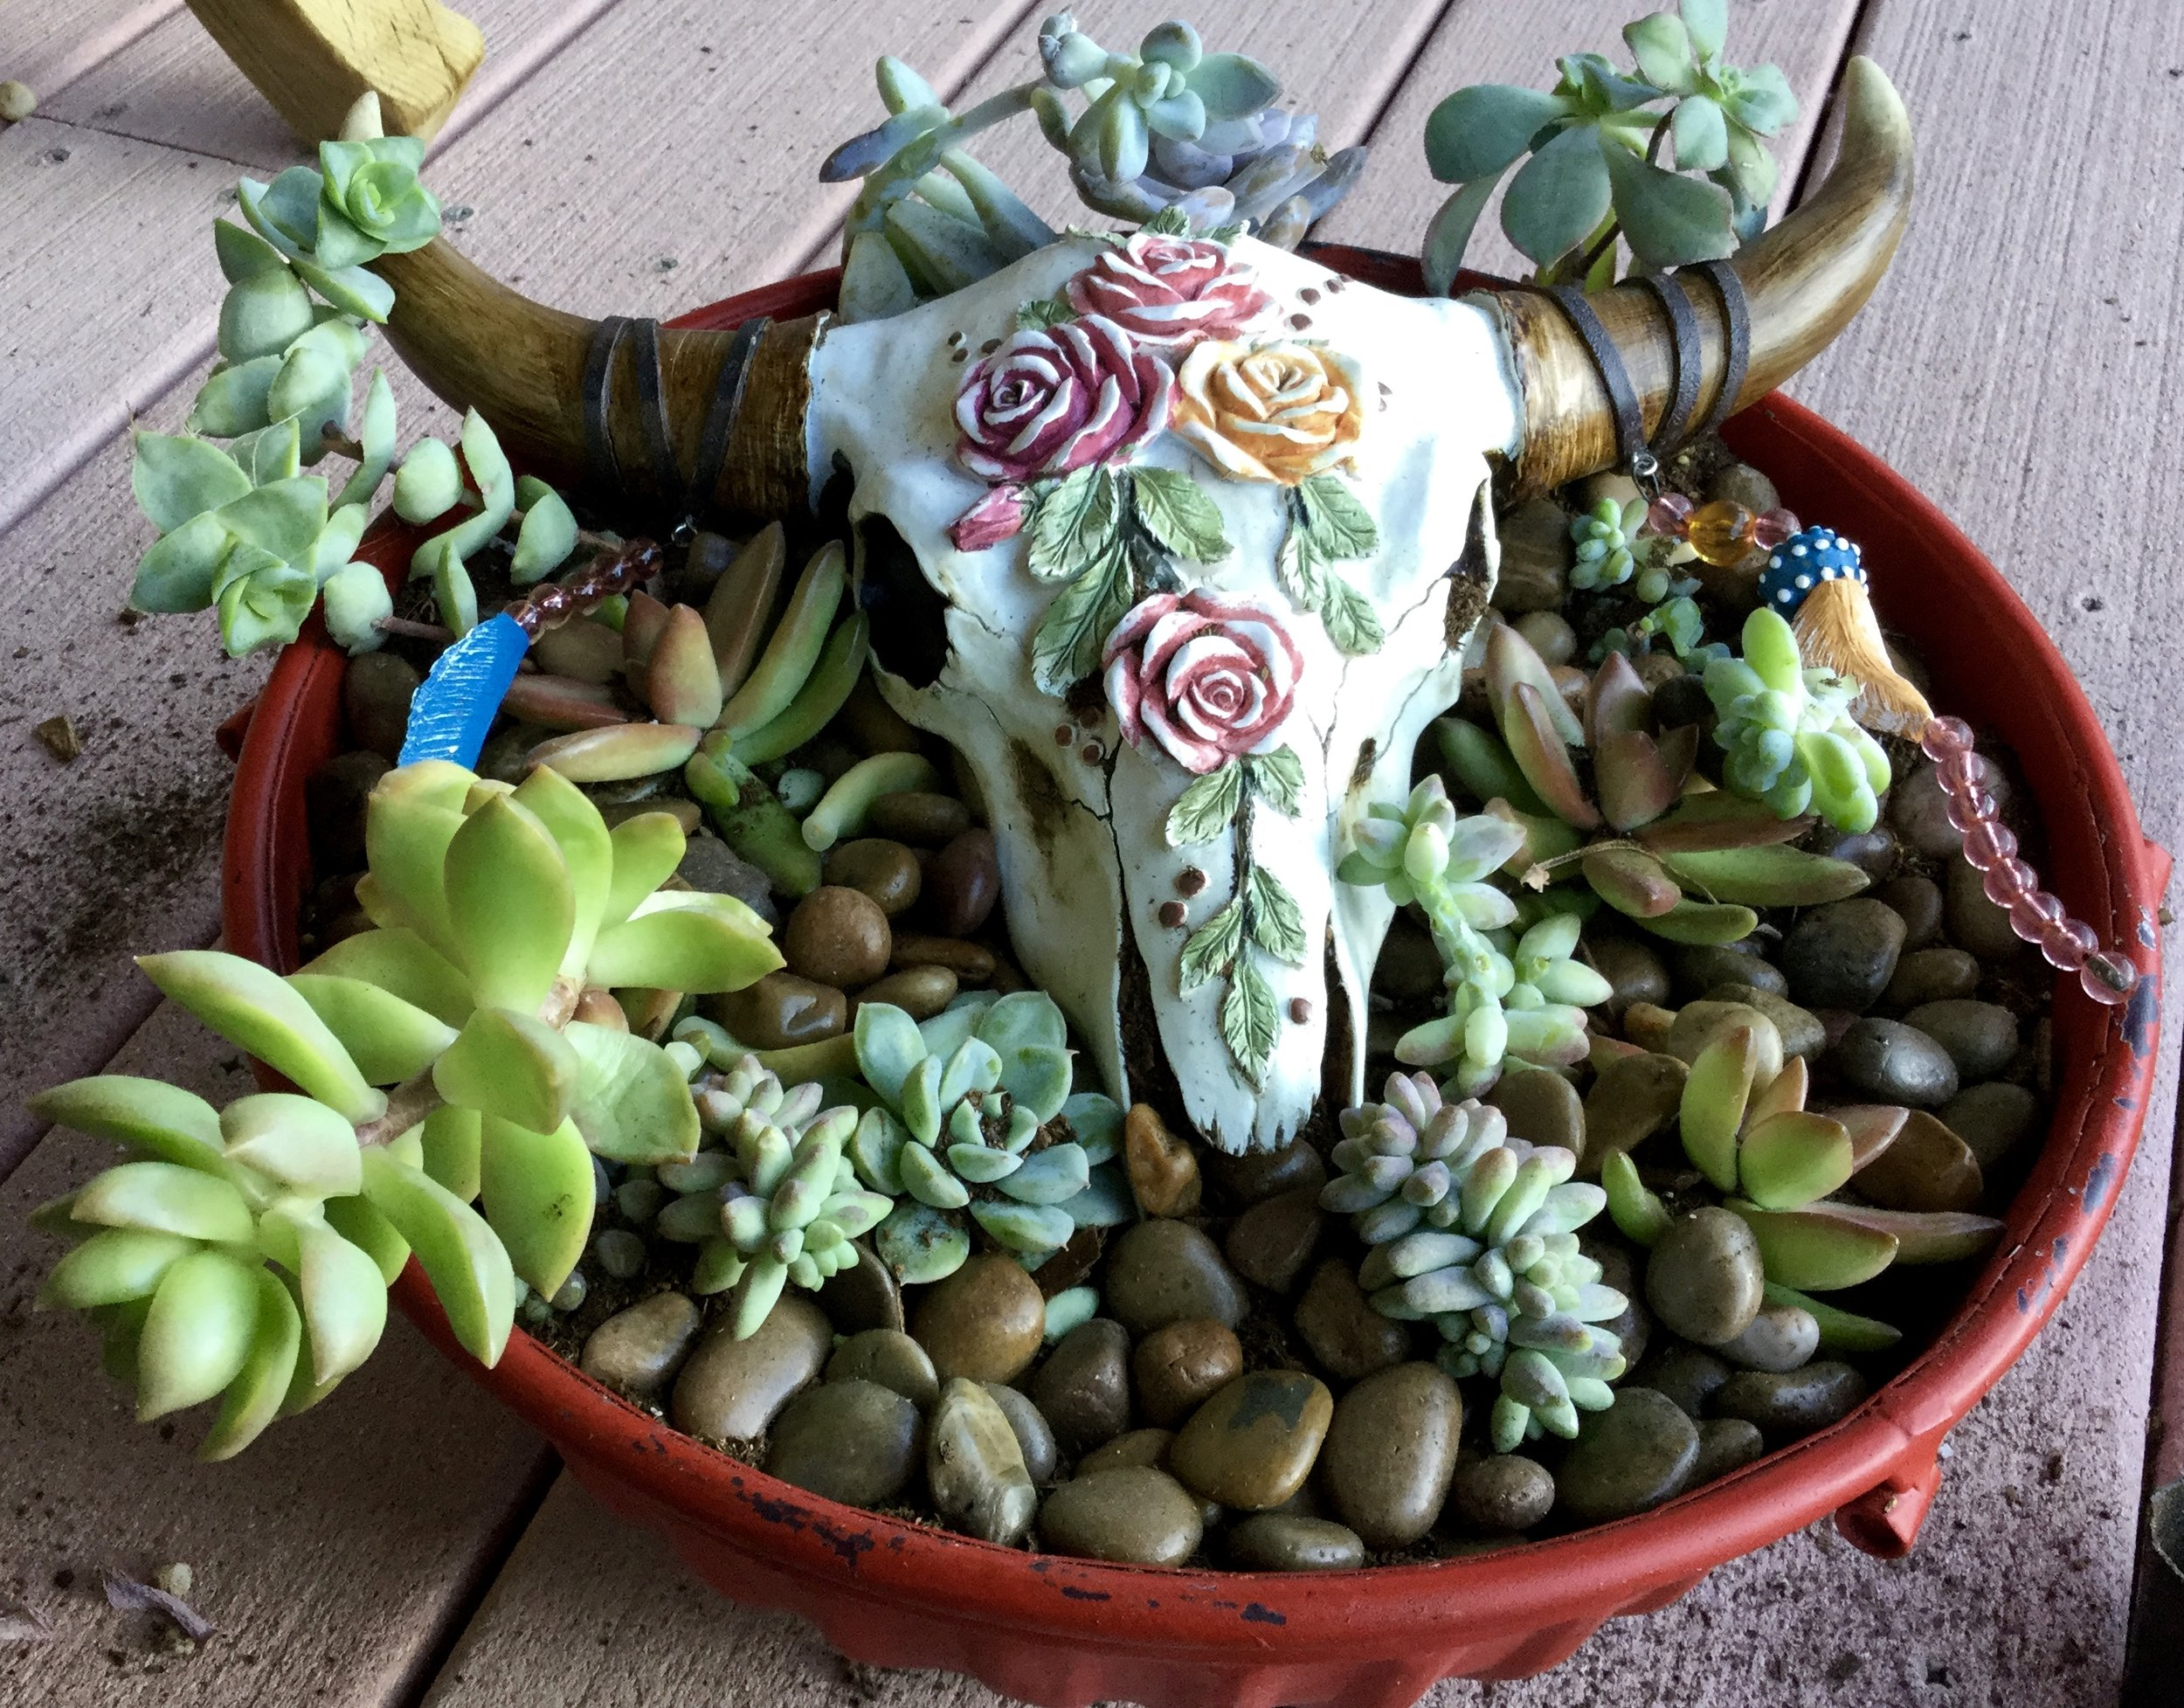 The (almost) finished bowl. I'm going to add one more succulent plug to the front, there.